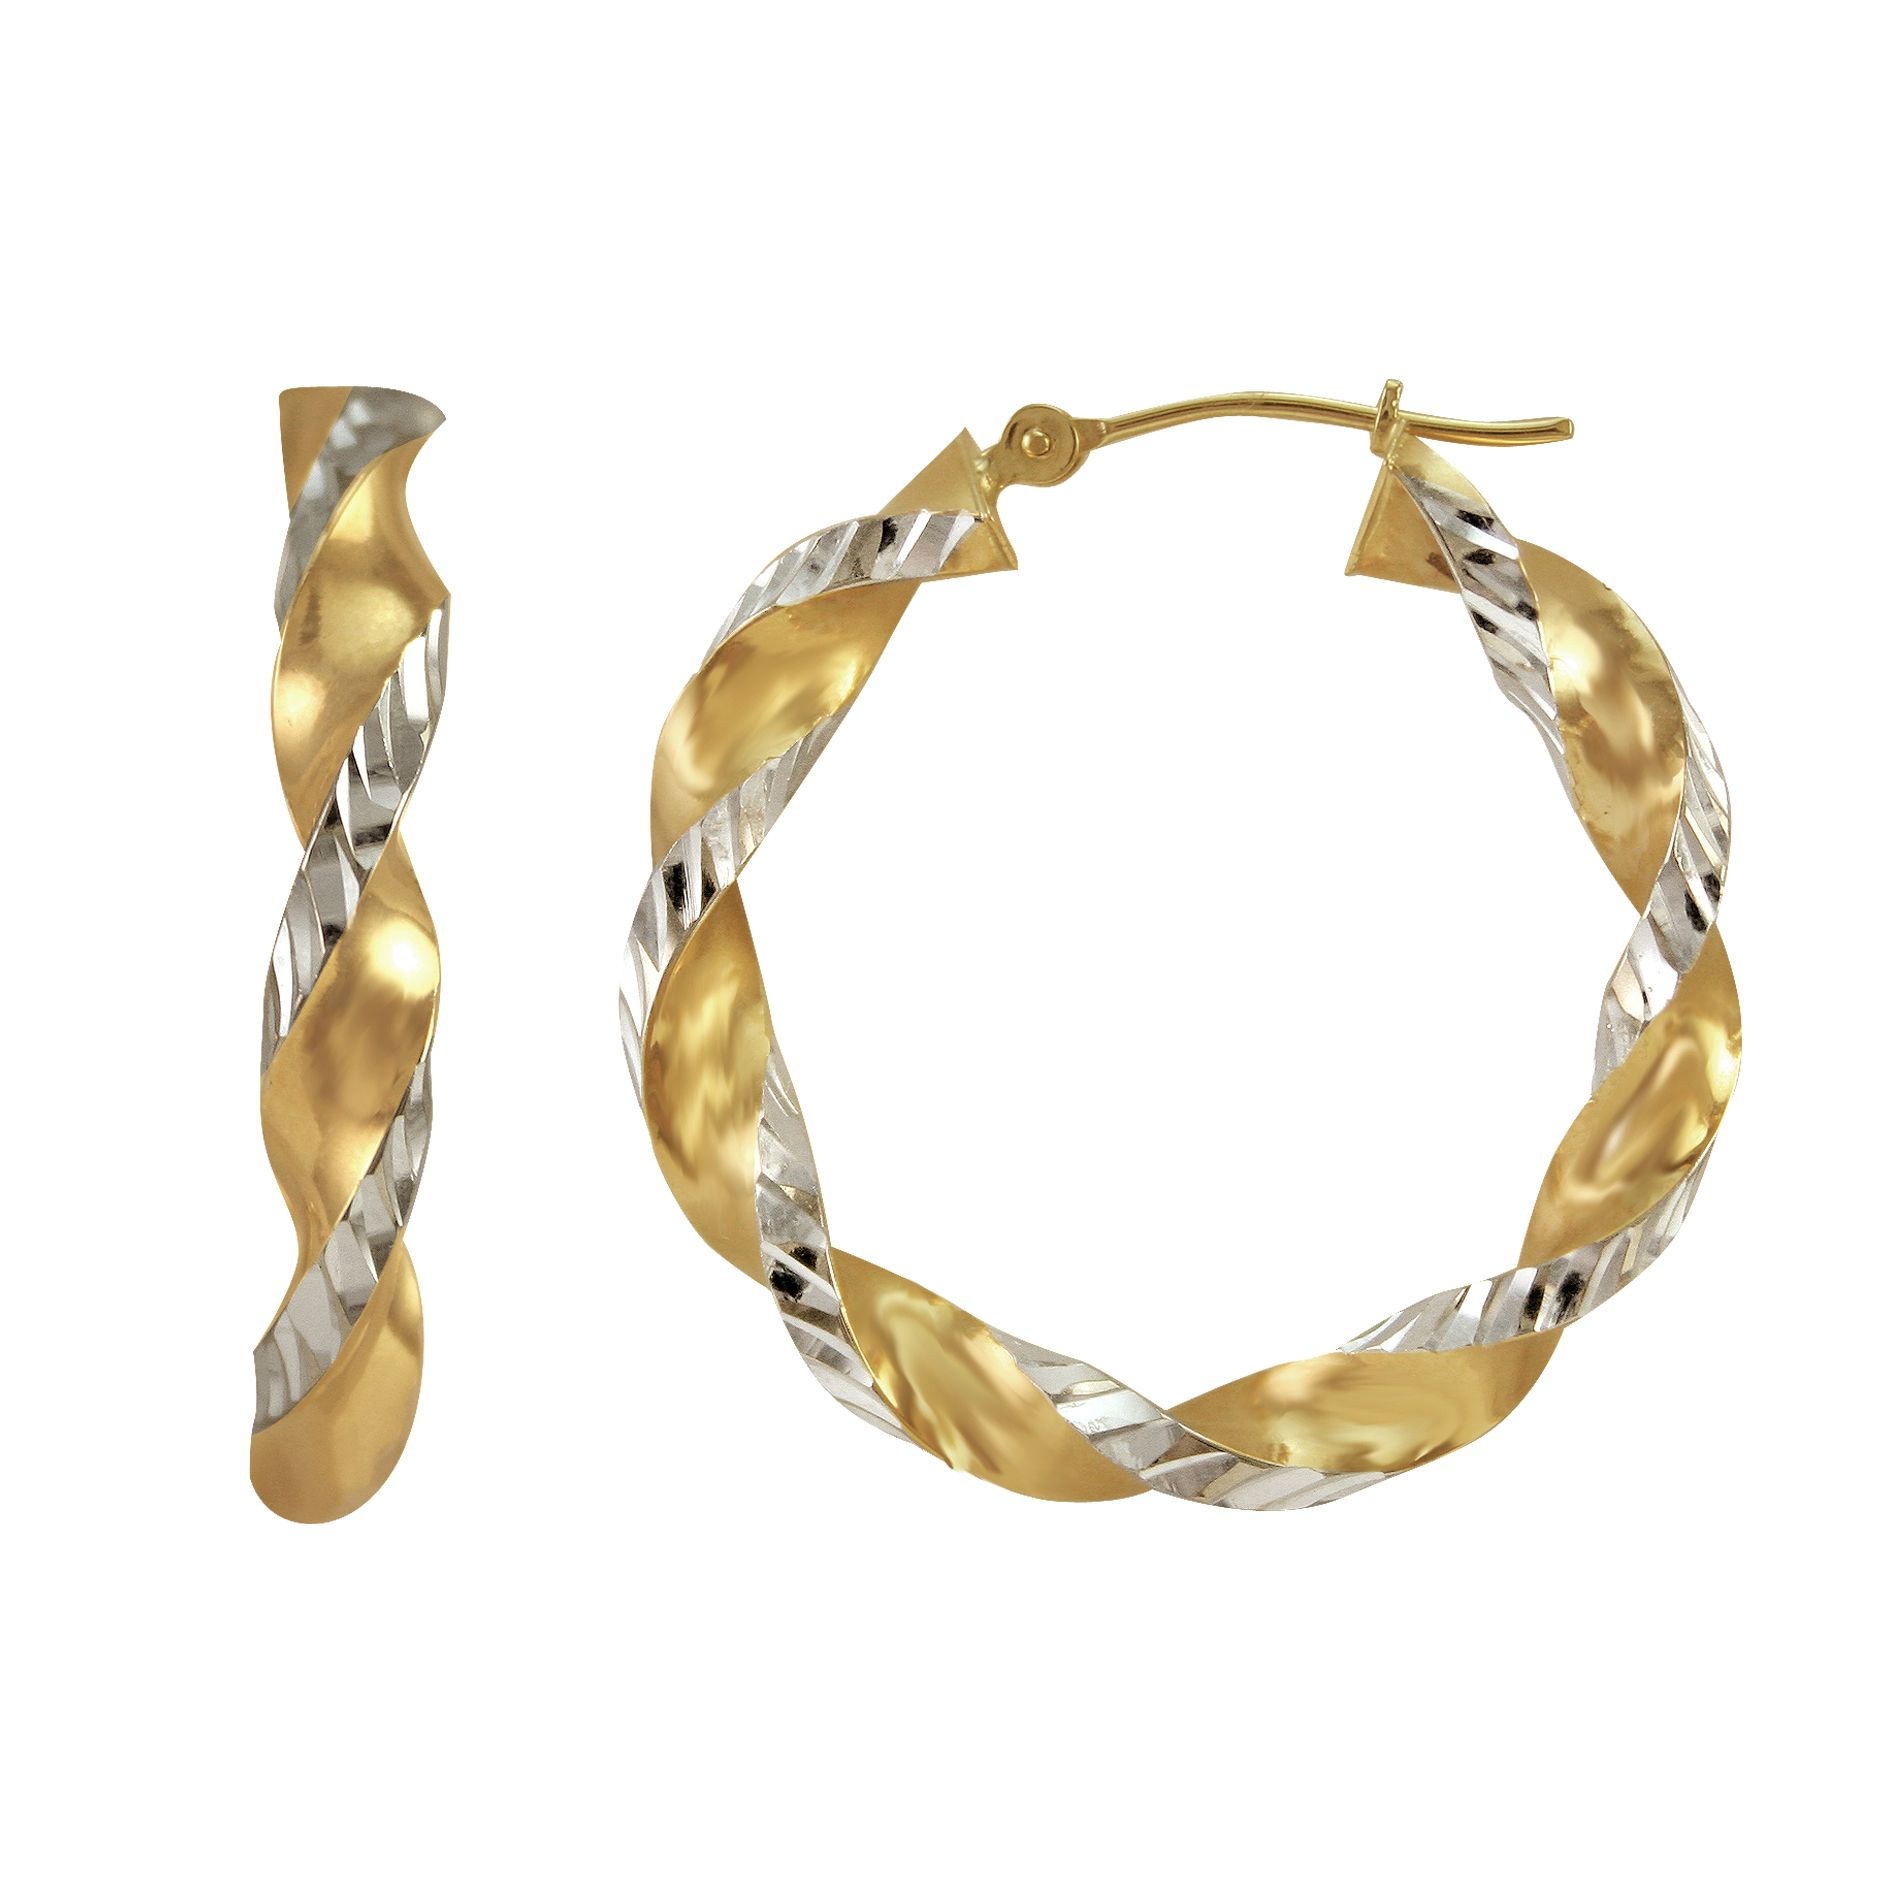 10kt Gold and Sterling Silver Hoop Earrings